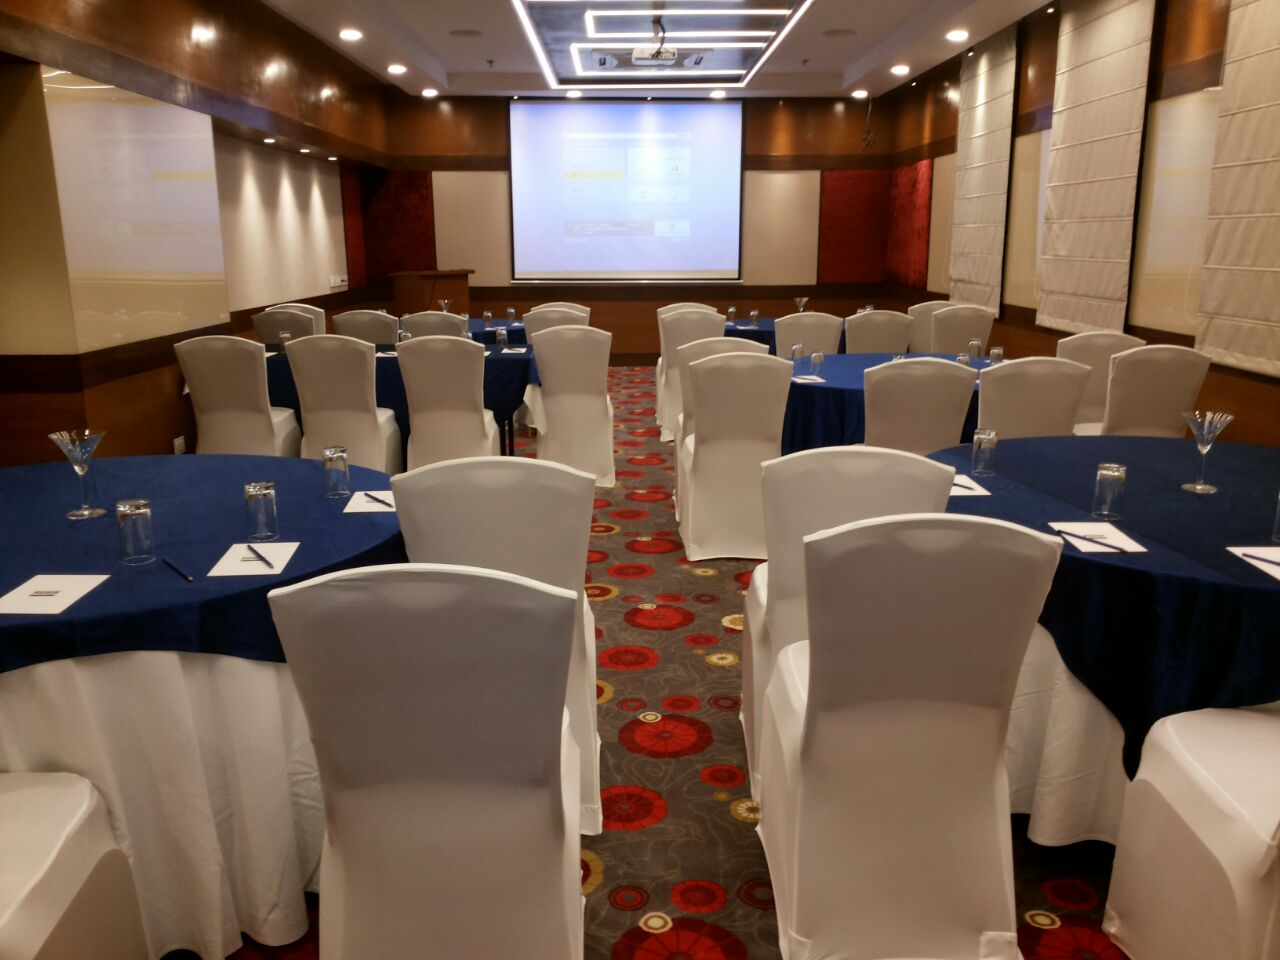 Hotel with Meetings in jaipur